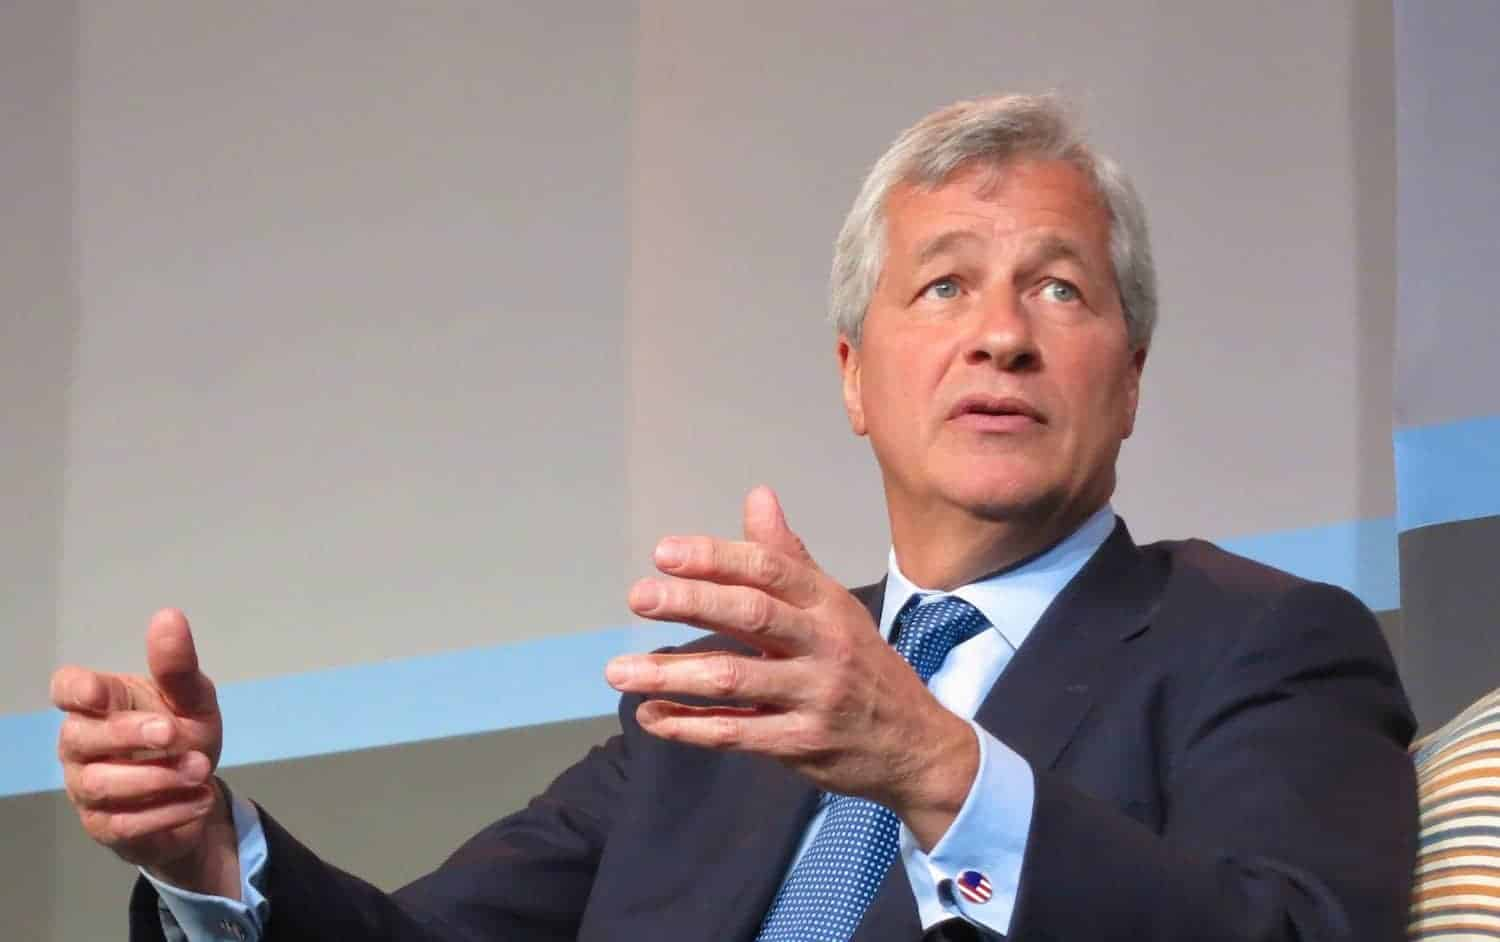 jamie dimon says hes done talking about bitcoin - Jamie Dimon Says He's Done Talking About Bitcoin